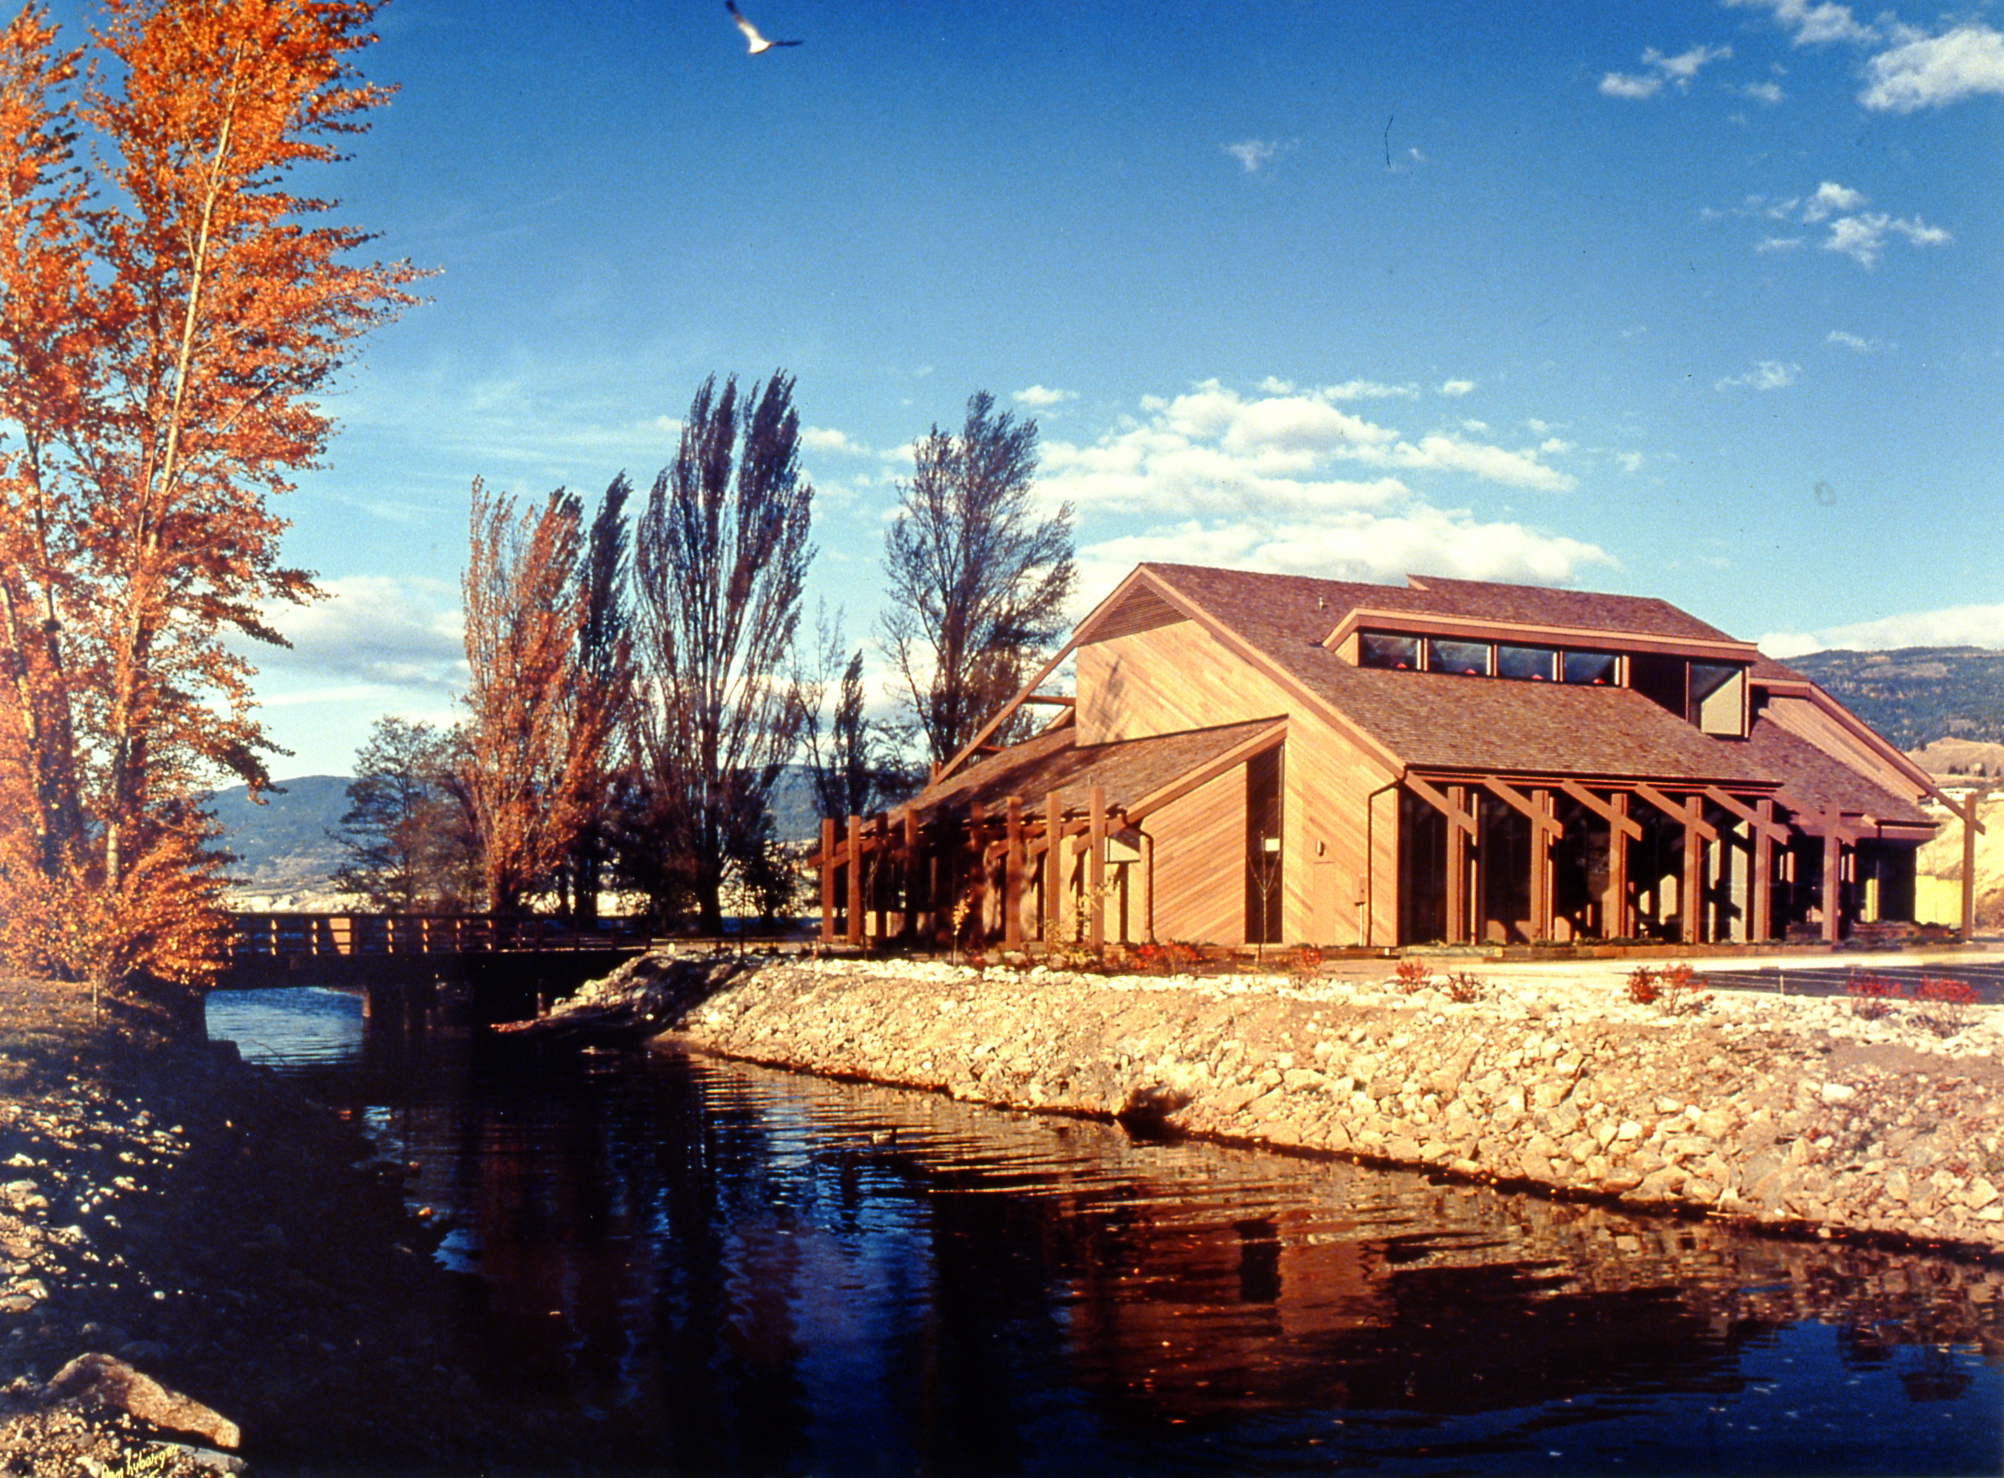 Art Gallery of the South Okanagan , 1985, Dan Lybarger, photo on paper, 42 cm x 58.5 cm, 2003.03.01, gift of the artist